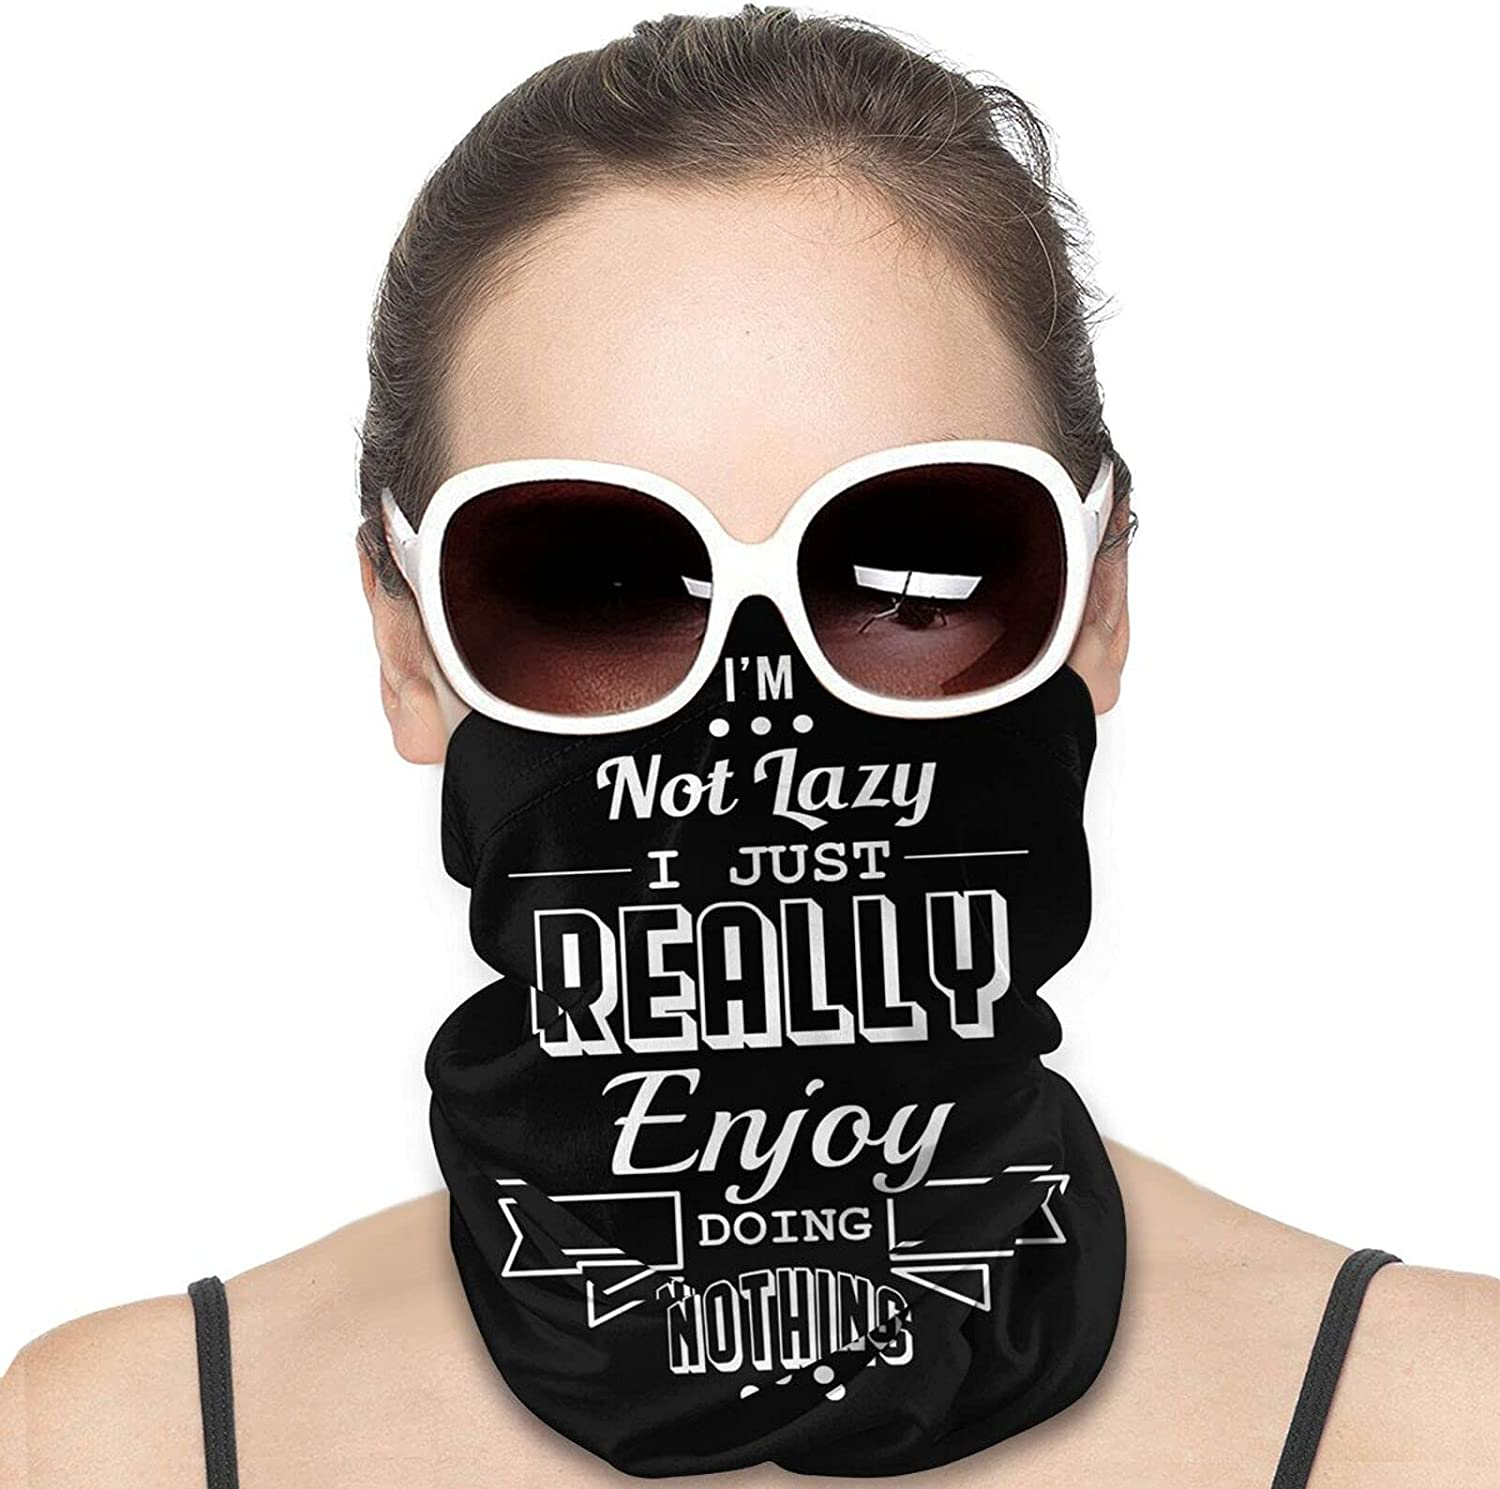 Not Lazy Enjoy Doing Nothing Round Neck Gaiter Bandnas Face Cover Uv Protection Prevent bask in Ice Scarf Headbands Perfect for Motorcycle Cycling Running Festival Raves Outdoors